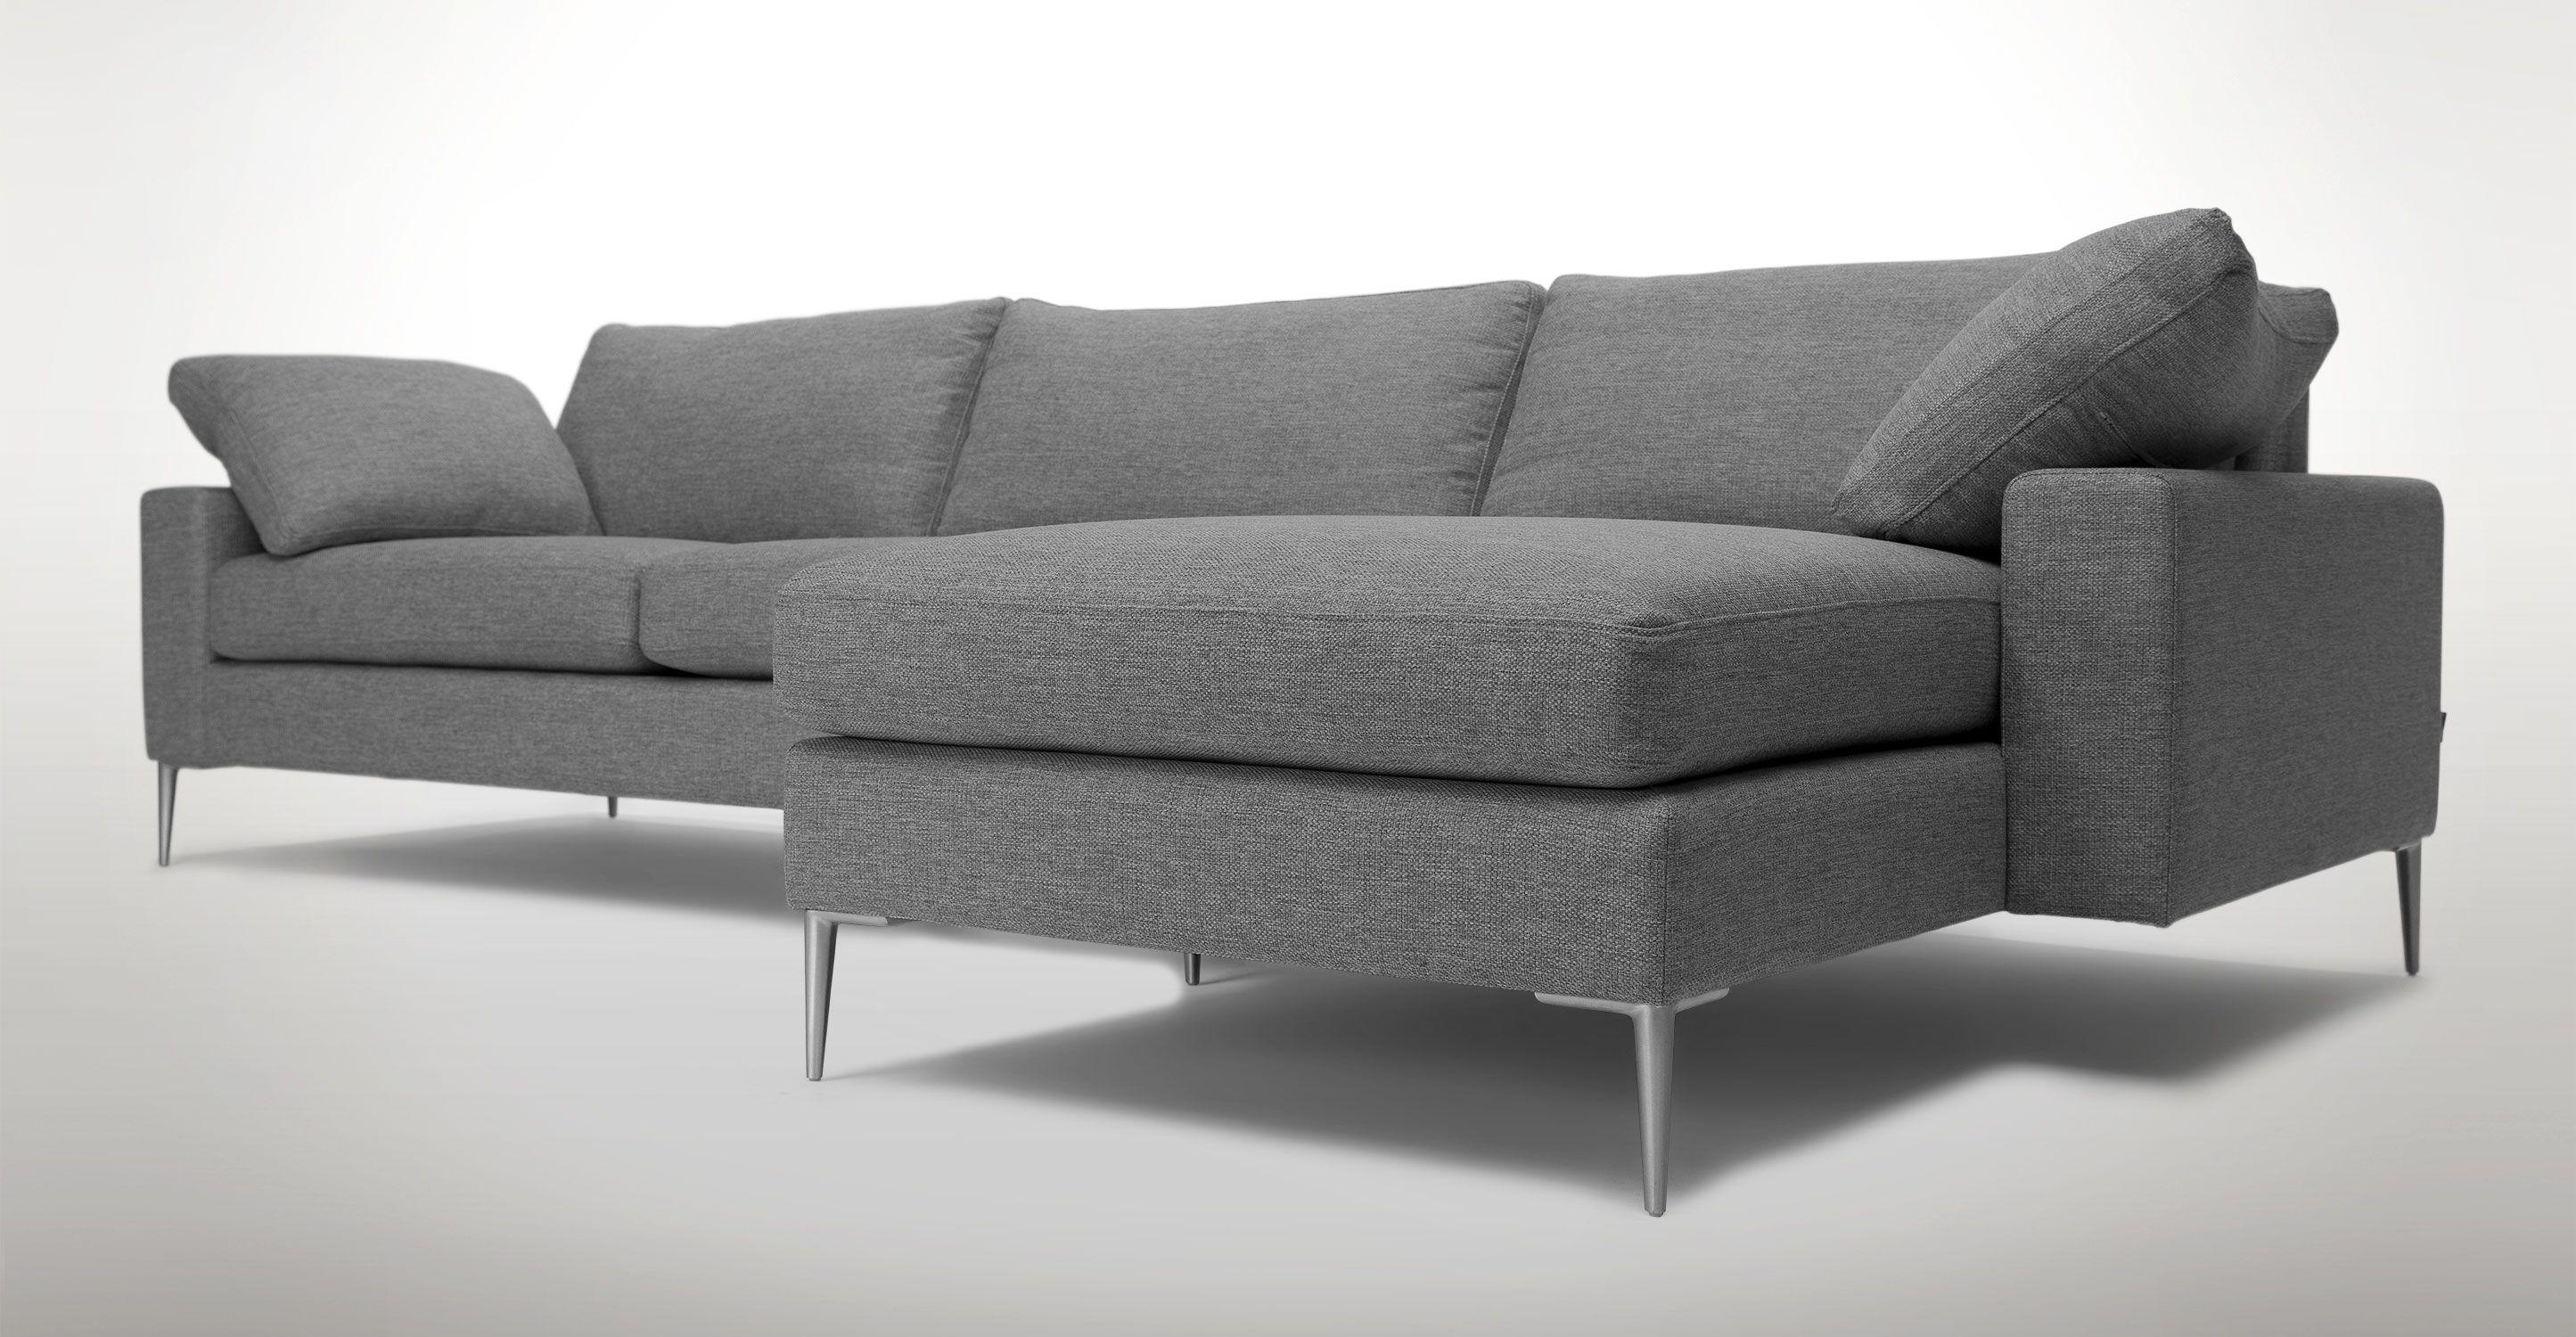 Gray Sectional Sofa With Metal Legs Article Nova Modern Bedroom